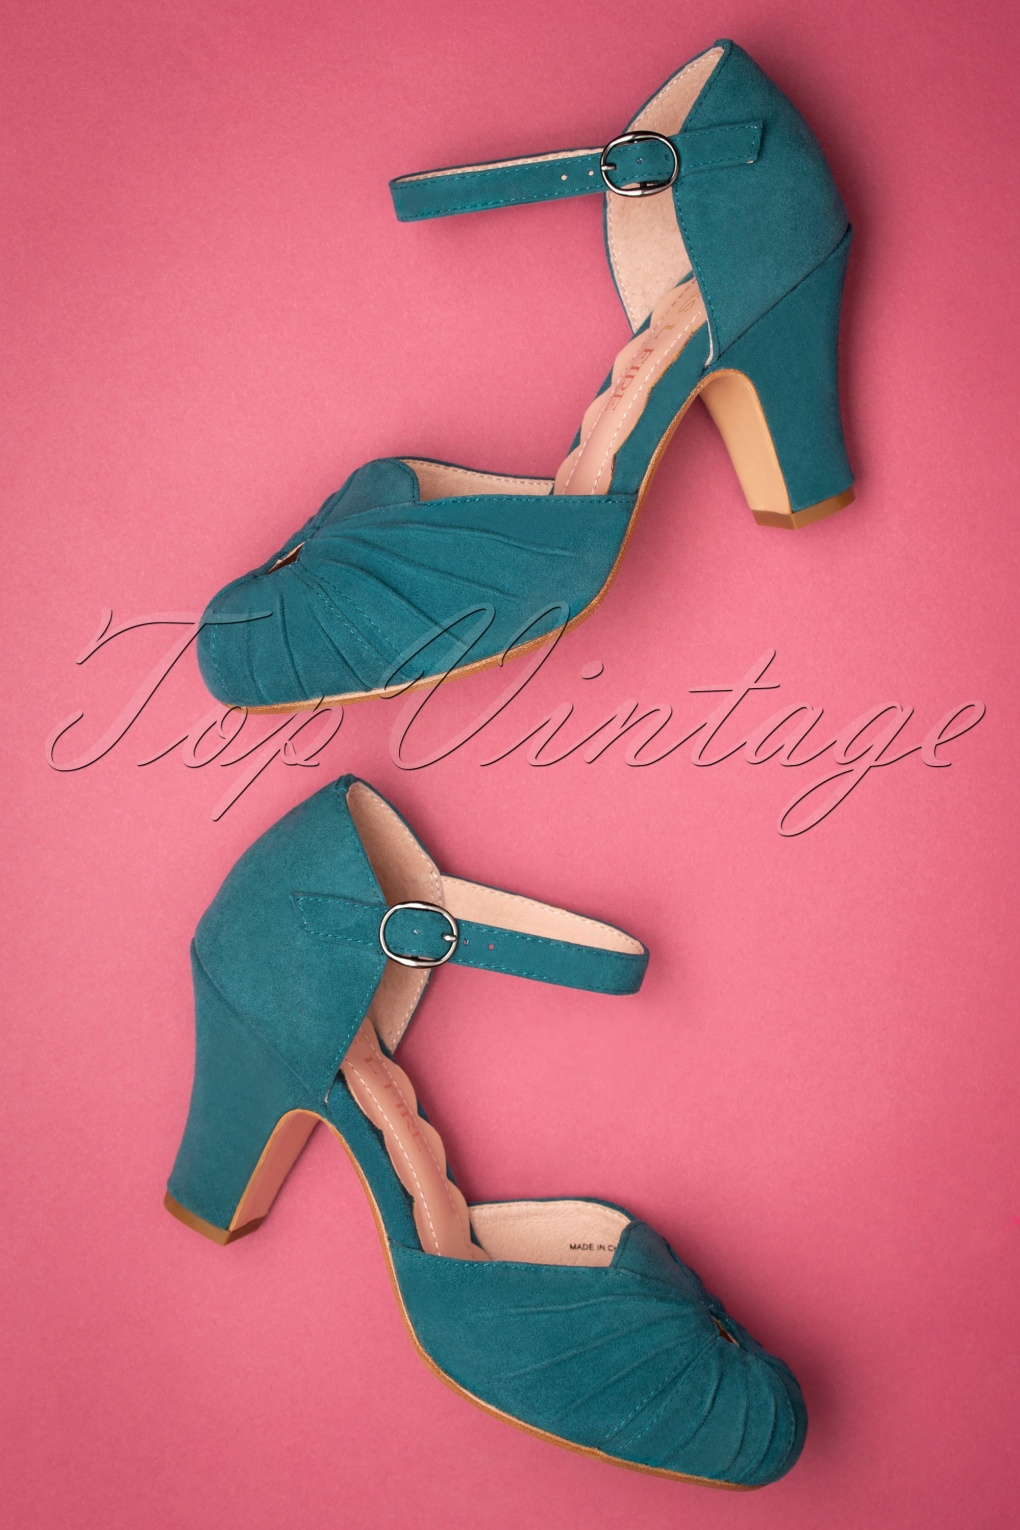 Vintage Heels, Retro Heels, Pumps, Shoes 40s Amber Suede Mary Jane Pumps in Teal £162.92 AT vintagedancer.com